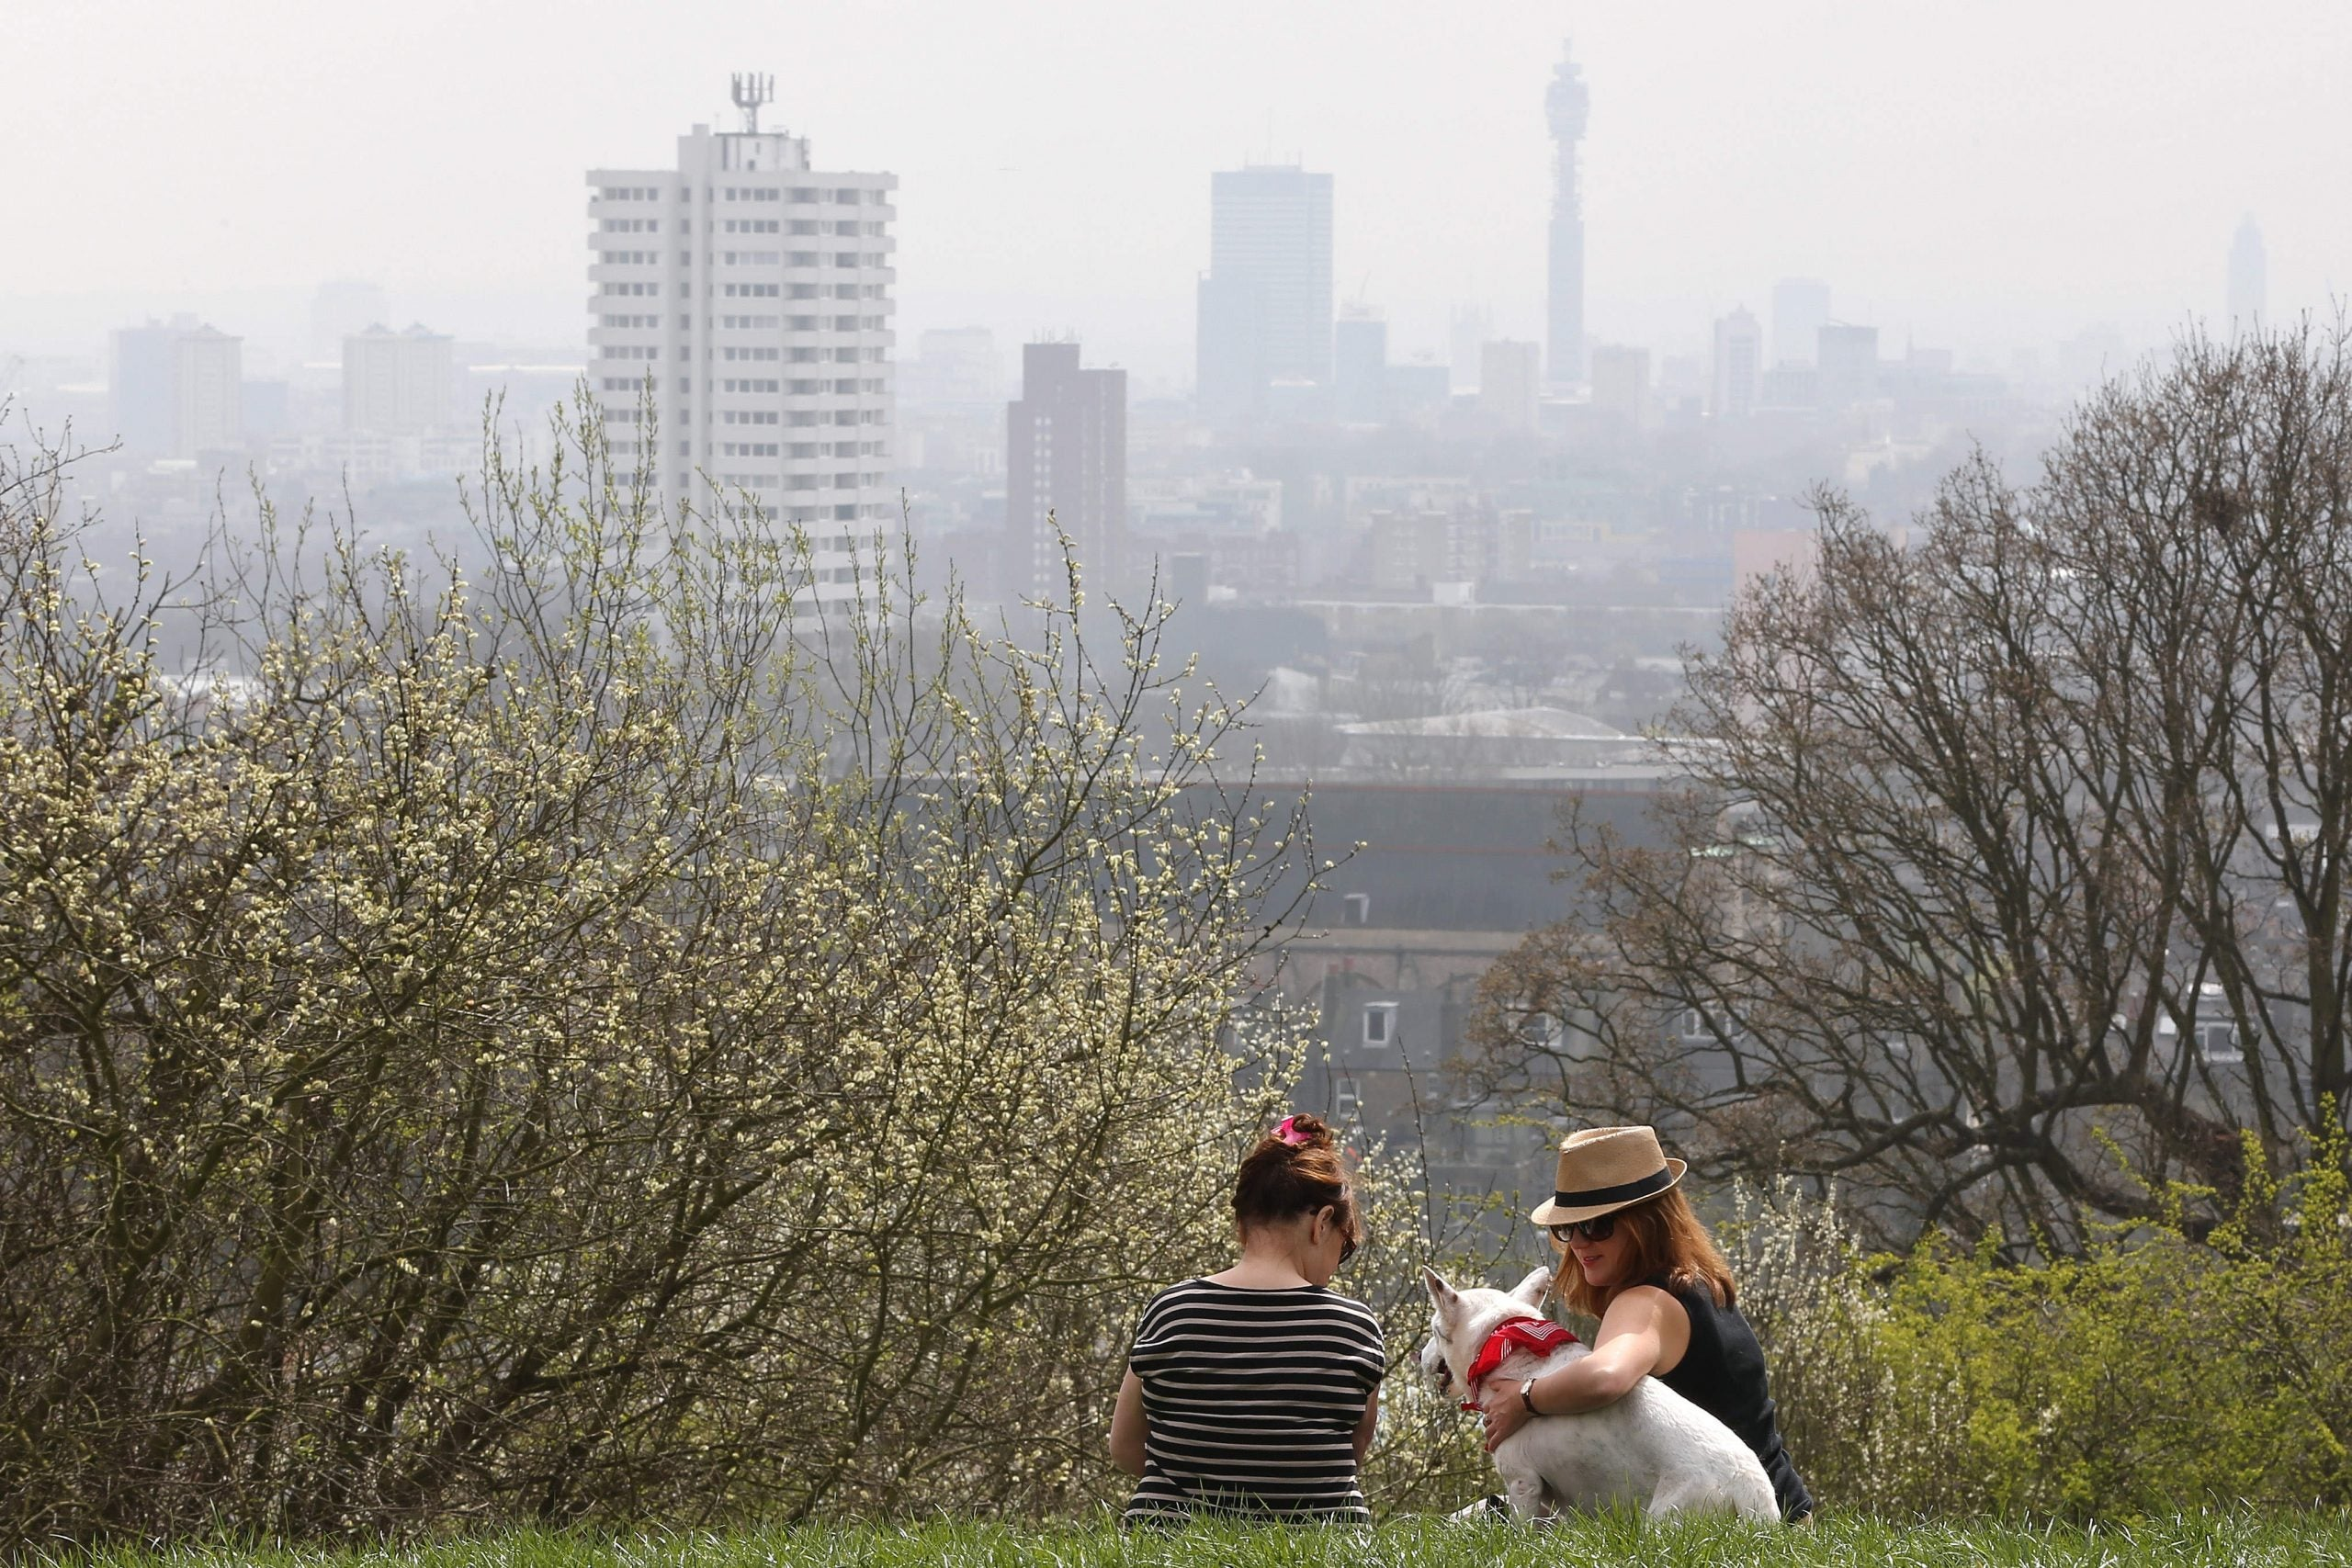 The next Mayor should channel the Victorians to make London the greenest capital in the world